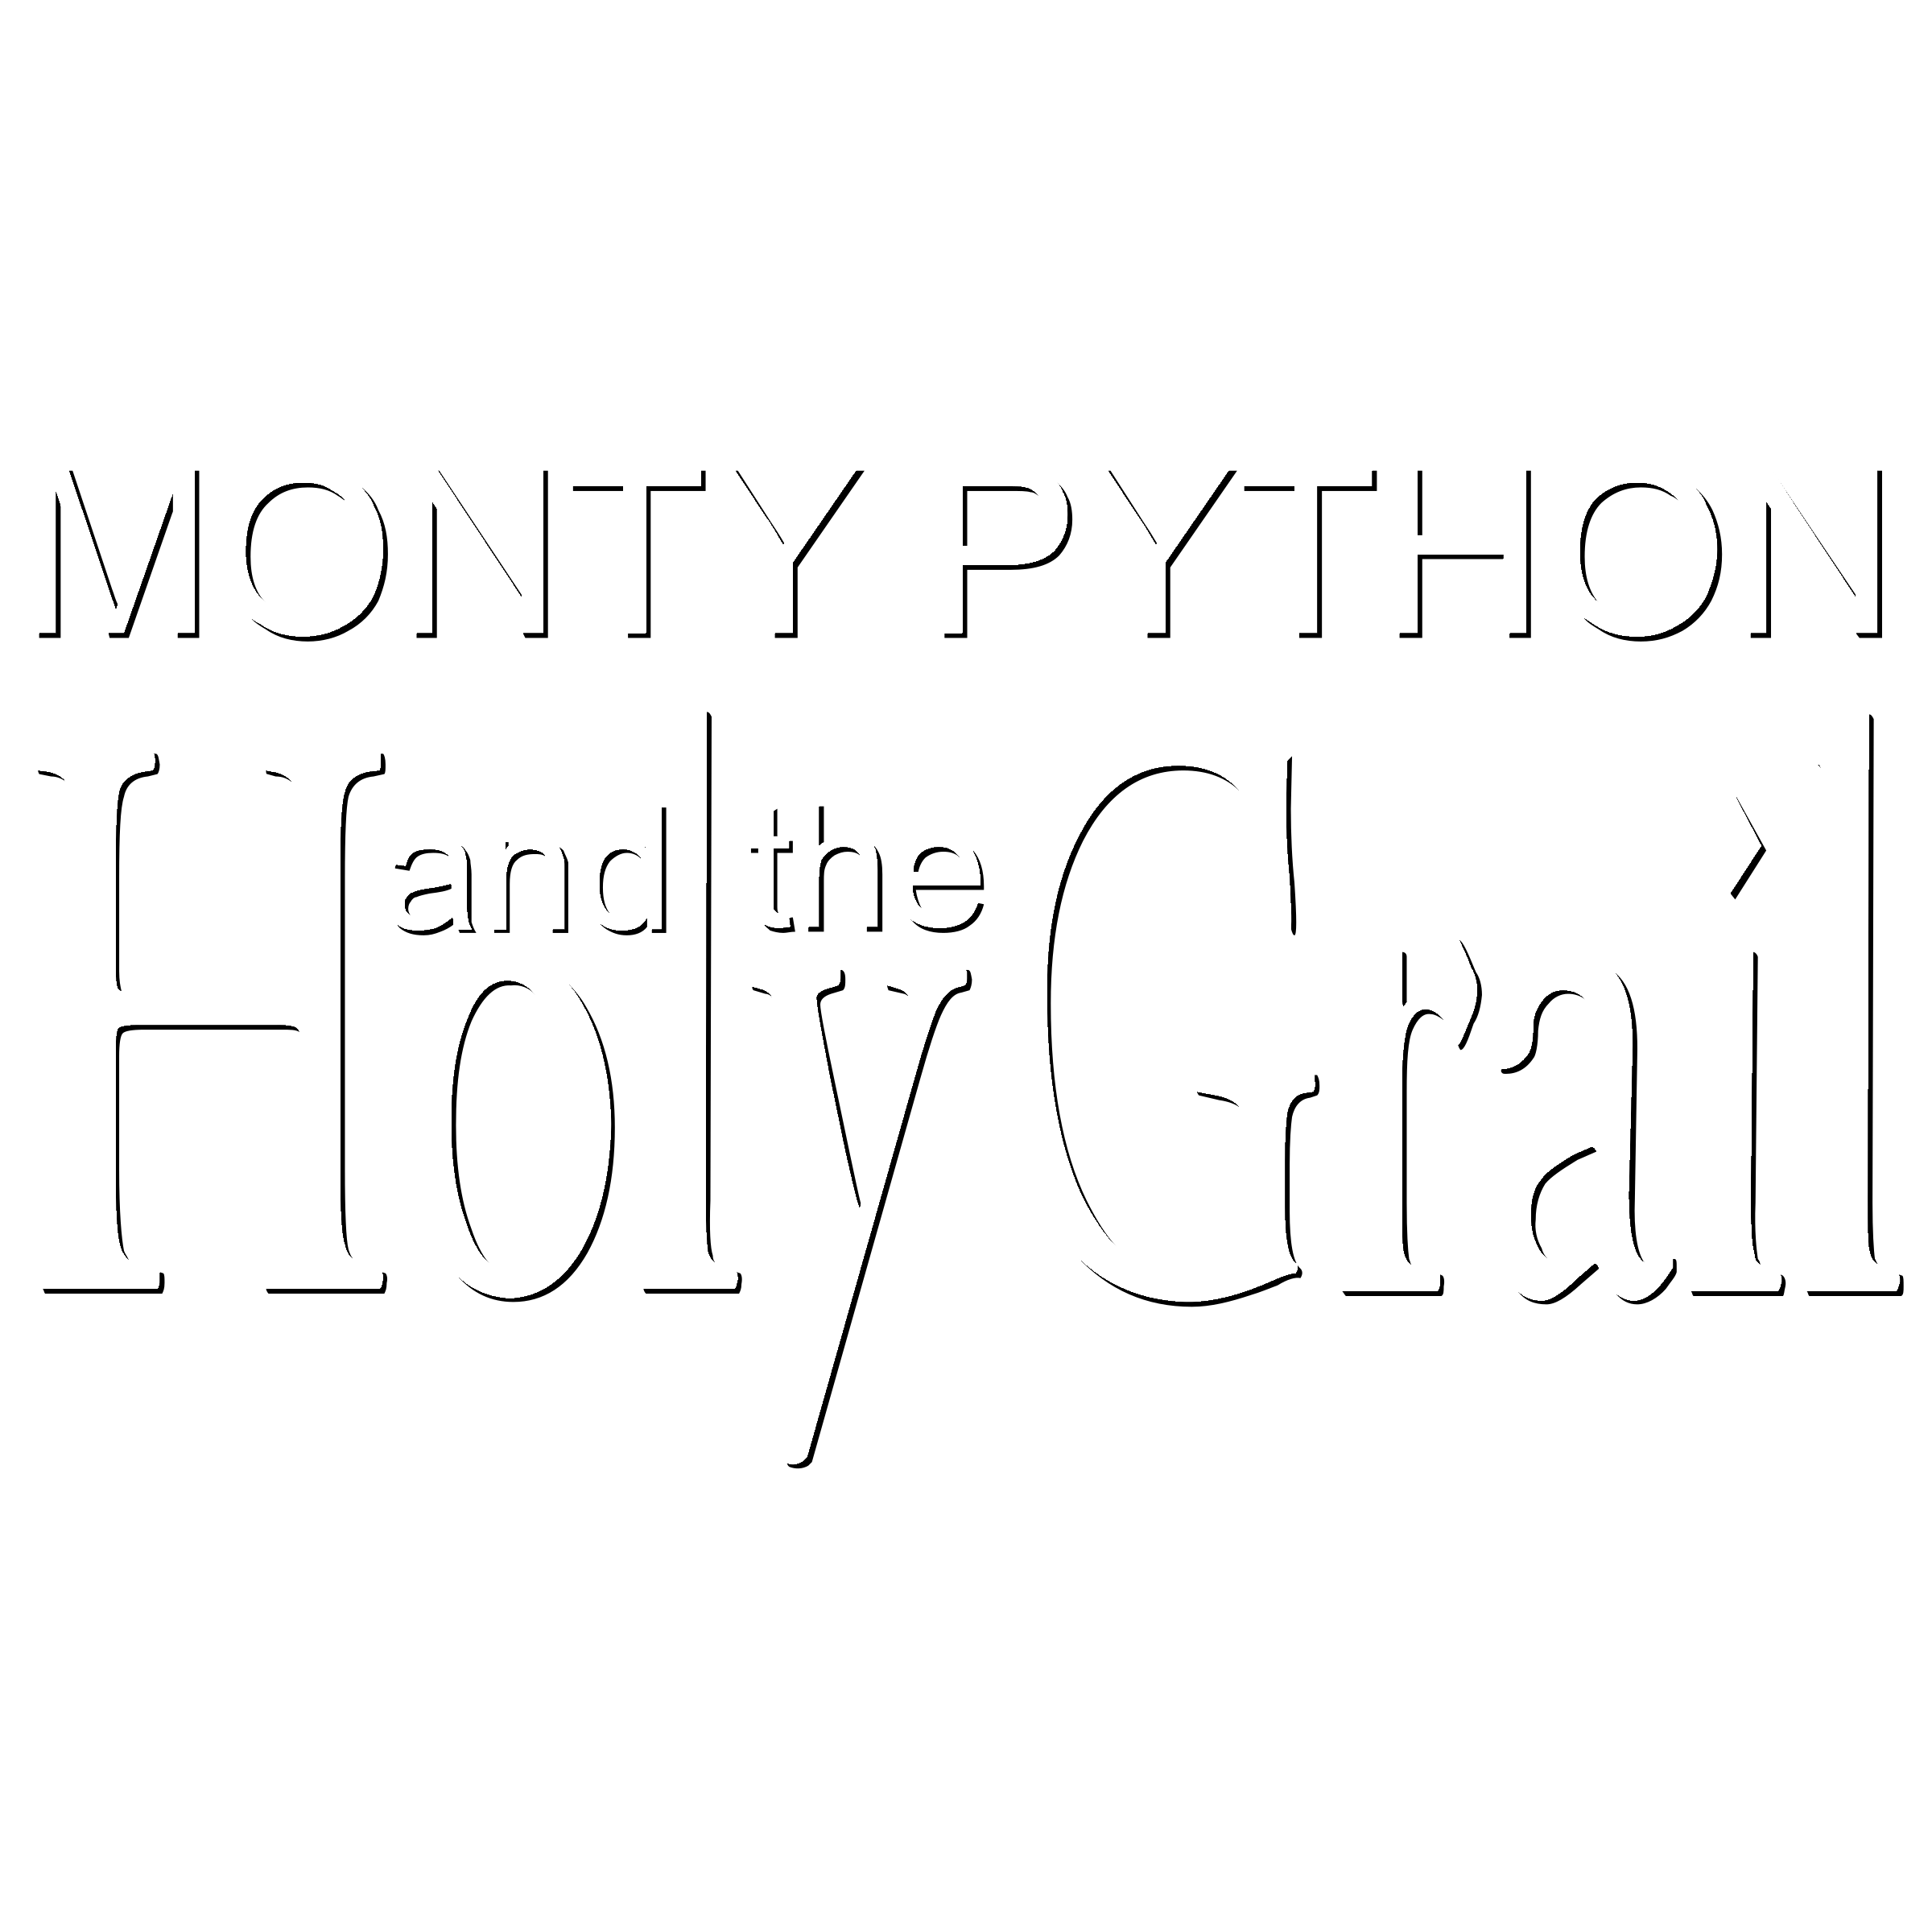 Monty Python and the Holy Grail Logo PNG Transparent & SVG